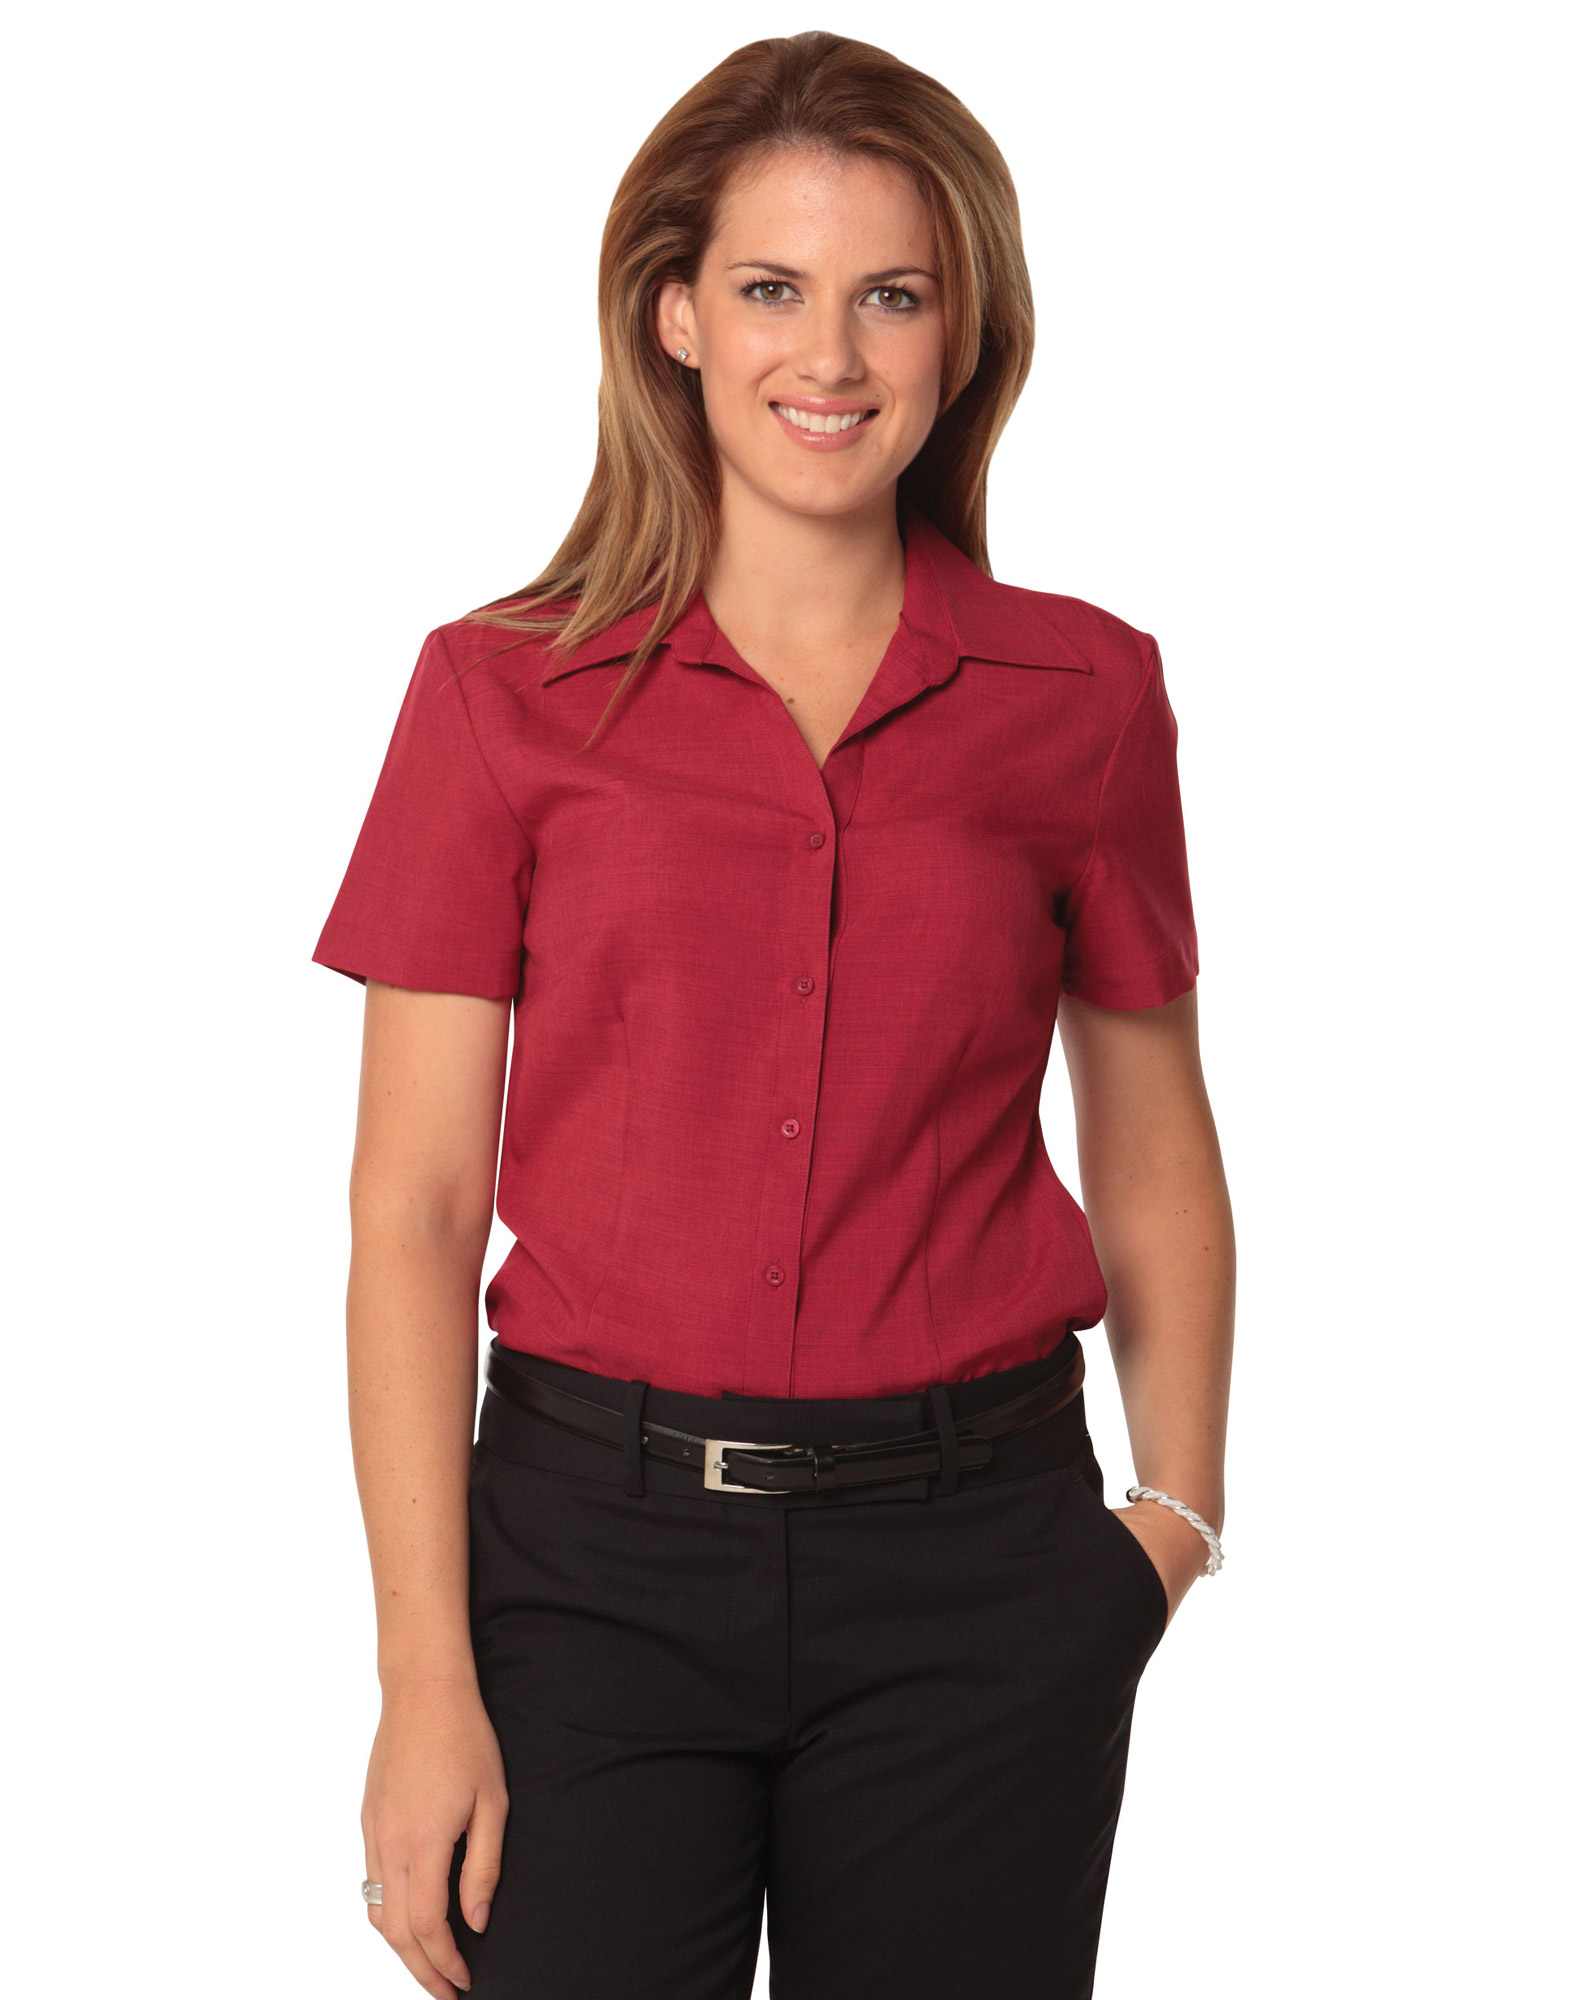 Over Styles of Women's Short Sleeve Tops at tubidyindir.ga: Embroidered Shirts, Tee Shirts, Polo Tops, Lace Tops, Tunics, Print Tops and more - In Stock and Ready to Ship.